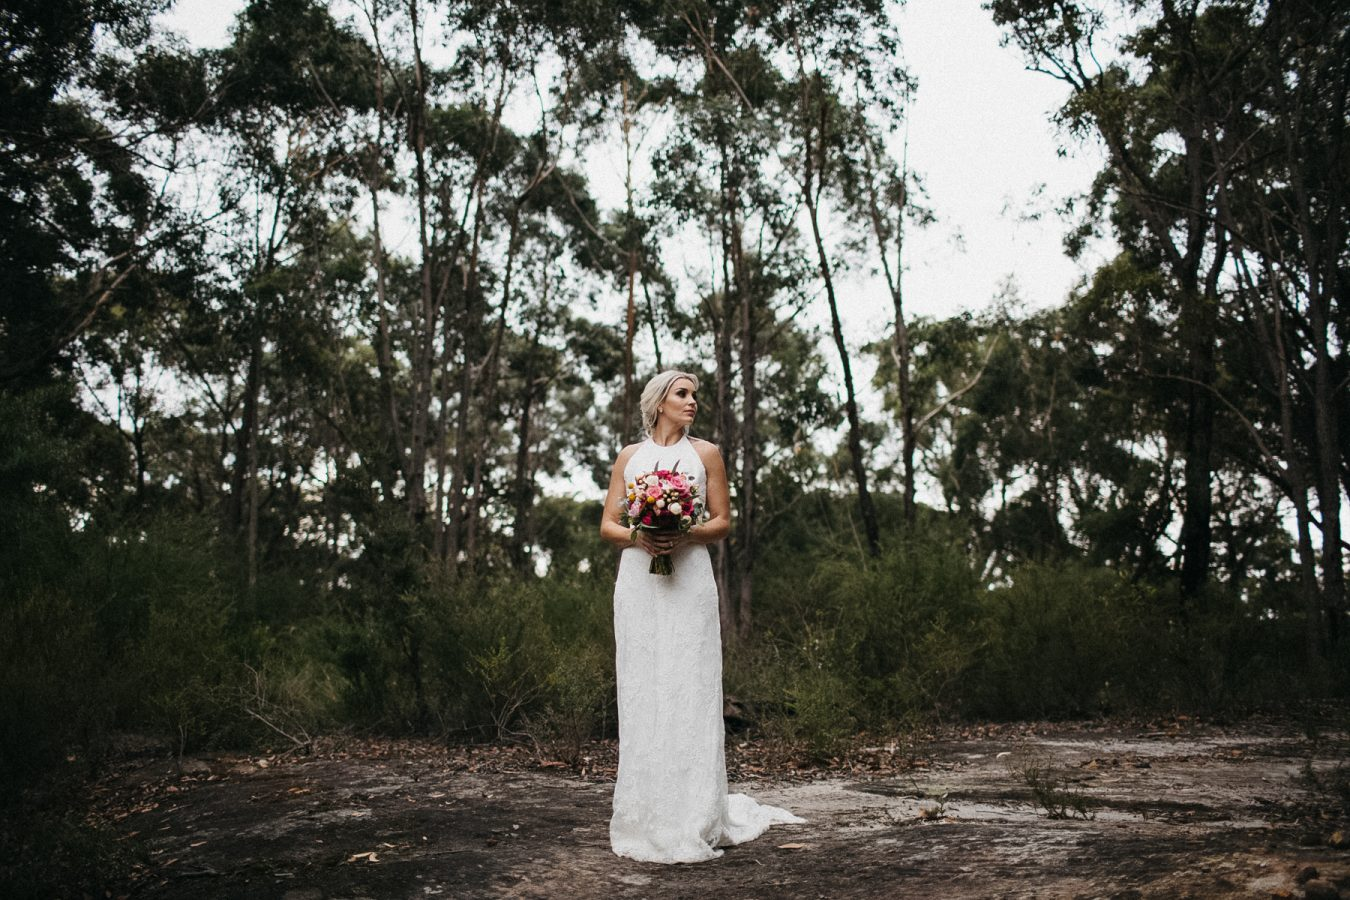 Courtney-Josh-Growwild-Bowral-southernhighlans-Wedding-77